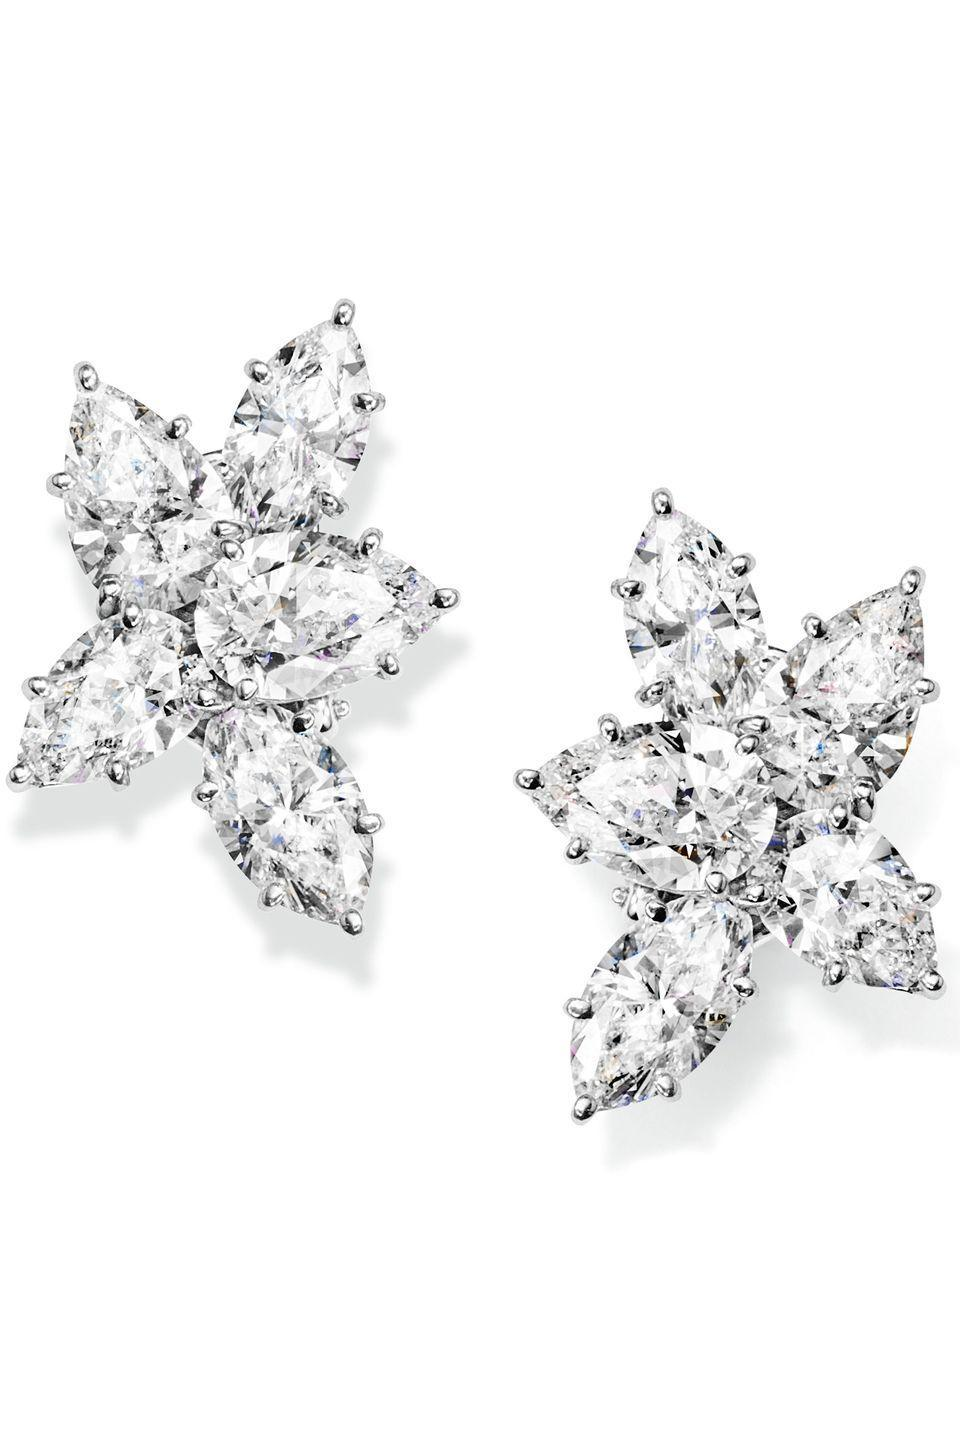 """<p><a class=""""link rapid-noclick-resp"""" href=""""https://www.harrywinston.com/en/winston%E2%84%A2-cluster-harry-winston-large-diamond-earrings"""" rel=""""nofollow noopener"""" target=""""_blank"""" data-ylk=""""slk:SHOP NOW"""">SHOP NOW</a></p><p>The American jeweller, Harry Winston, founded his eponymous house in 1932 and became renowned for handling some of the world's most famous diamonds. </p><p>As the 'King of Diamonds', he was the first jeweller to lend diamonds to an actress (Jennifer Jones, who was nominated for her role in the film Songs of Bernadette) for the Academy Awards in 1944. His sparkle has been spotted on red carpets around the world ever since. Marylin Monroe even mentions him in her song Diamonds Are a Girl's Best Friend, from the film Gentlemen Prefer Blondes. </p><p>Winston's signature technique came about in the 1940s, when he combined pear and marquise-cut diamonds at varying angles to create 'clusters' of brilliants. The cluster remains a trademark of the jeweller to this day, and aficionados adore it for its intense sparkle - as seen on A-listers like Jennifer Lopez, Charlize Theron, Margot Robbie, Helen Mirren and Natalie Portman. </p><p>White diamond and platinum earrings, price on request, <a href=""""https://www.harrywinston.com/en"""" rel=""""nofollow noopener"""" target=""""_blank"""" data-ylk=""""slk:Harry Winston"""" class=""""link rapid-noclick-resp"""">Harry Winston</a></p>"""